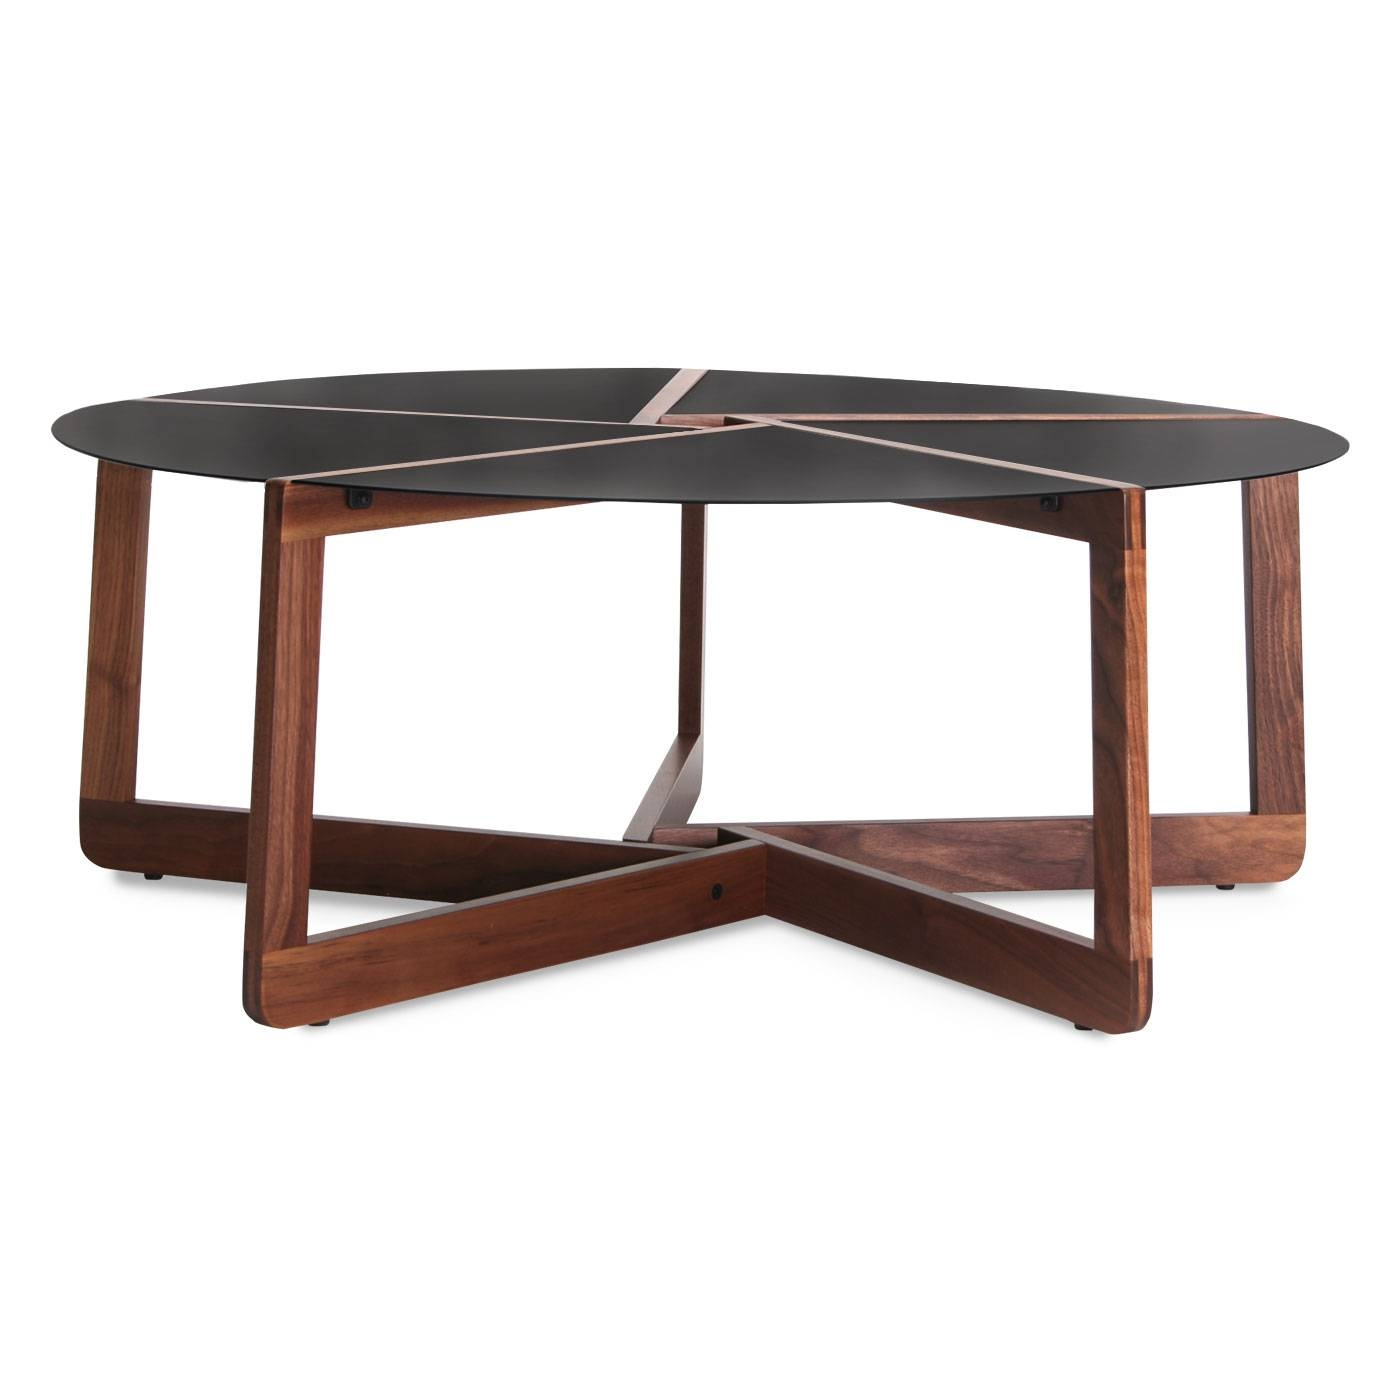 Pi Coffee Table – Round Wood & Metal Coffee Table | Blu Dot With Regard To Metal Round Coffee Tables (View 7 of 12)